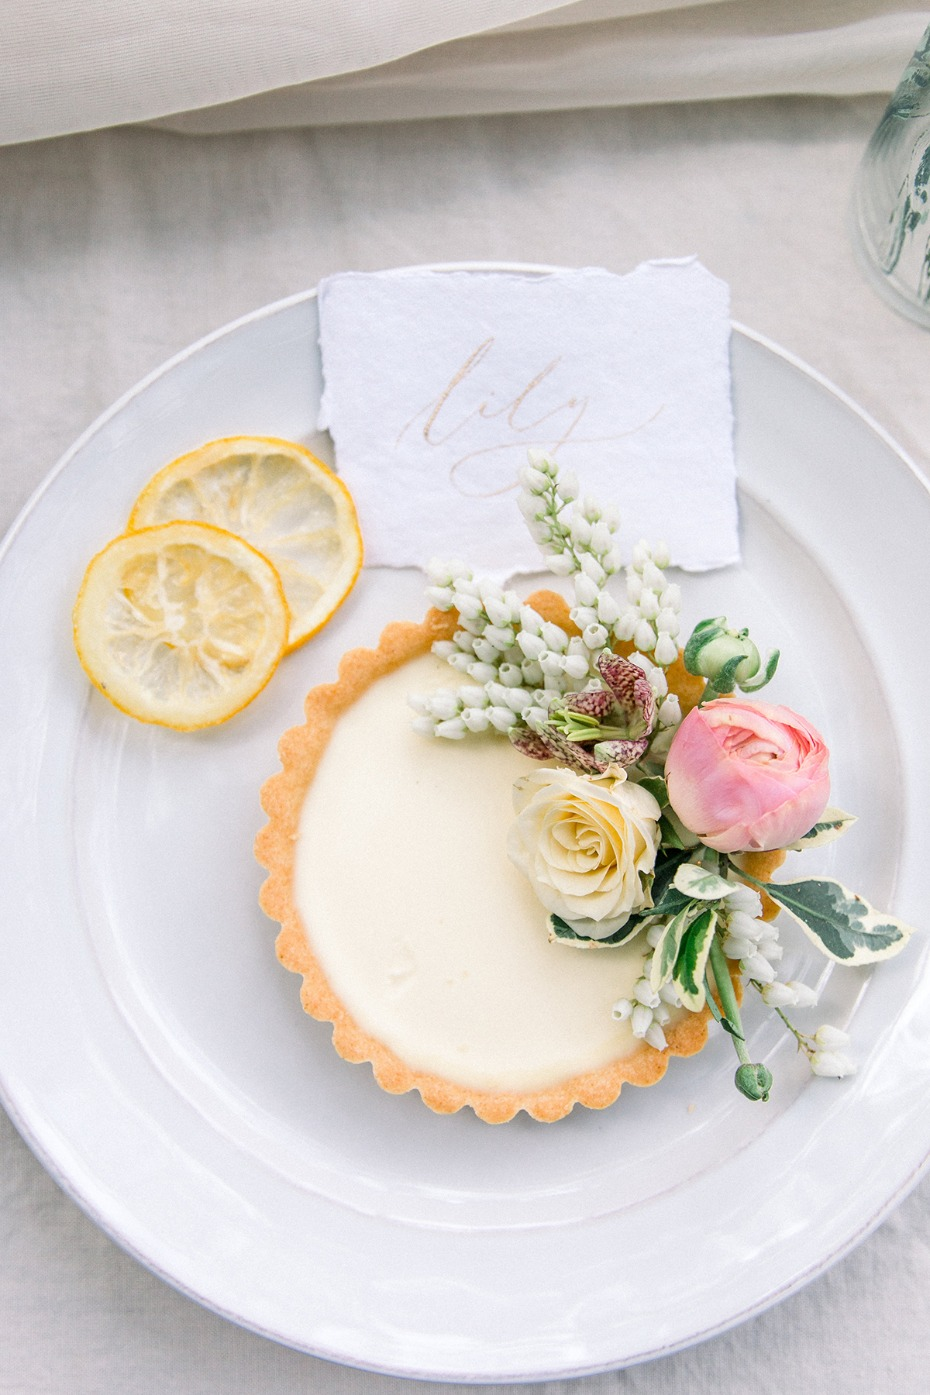 Lemon tart place card for a wedding